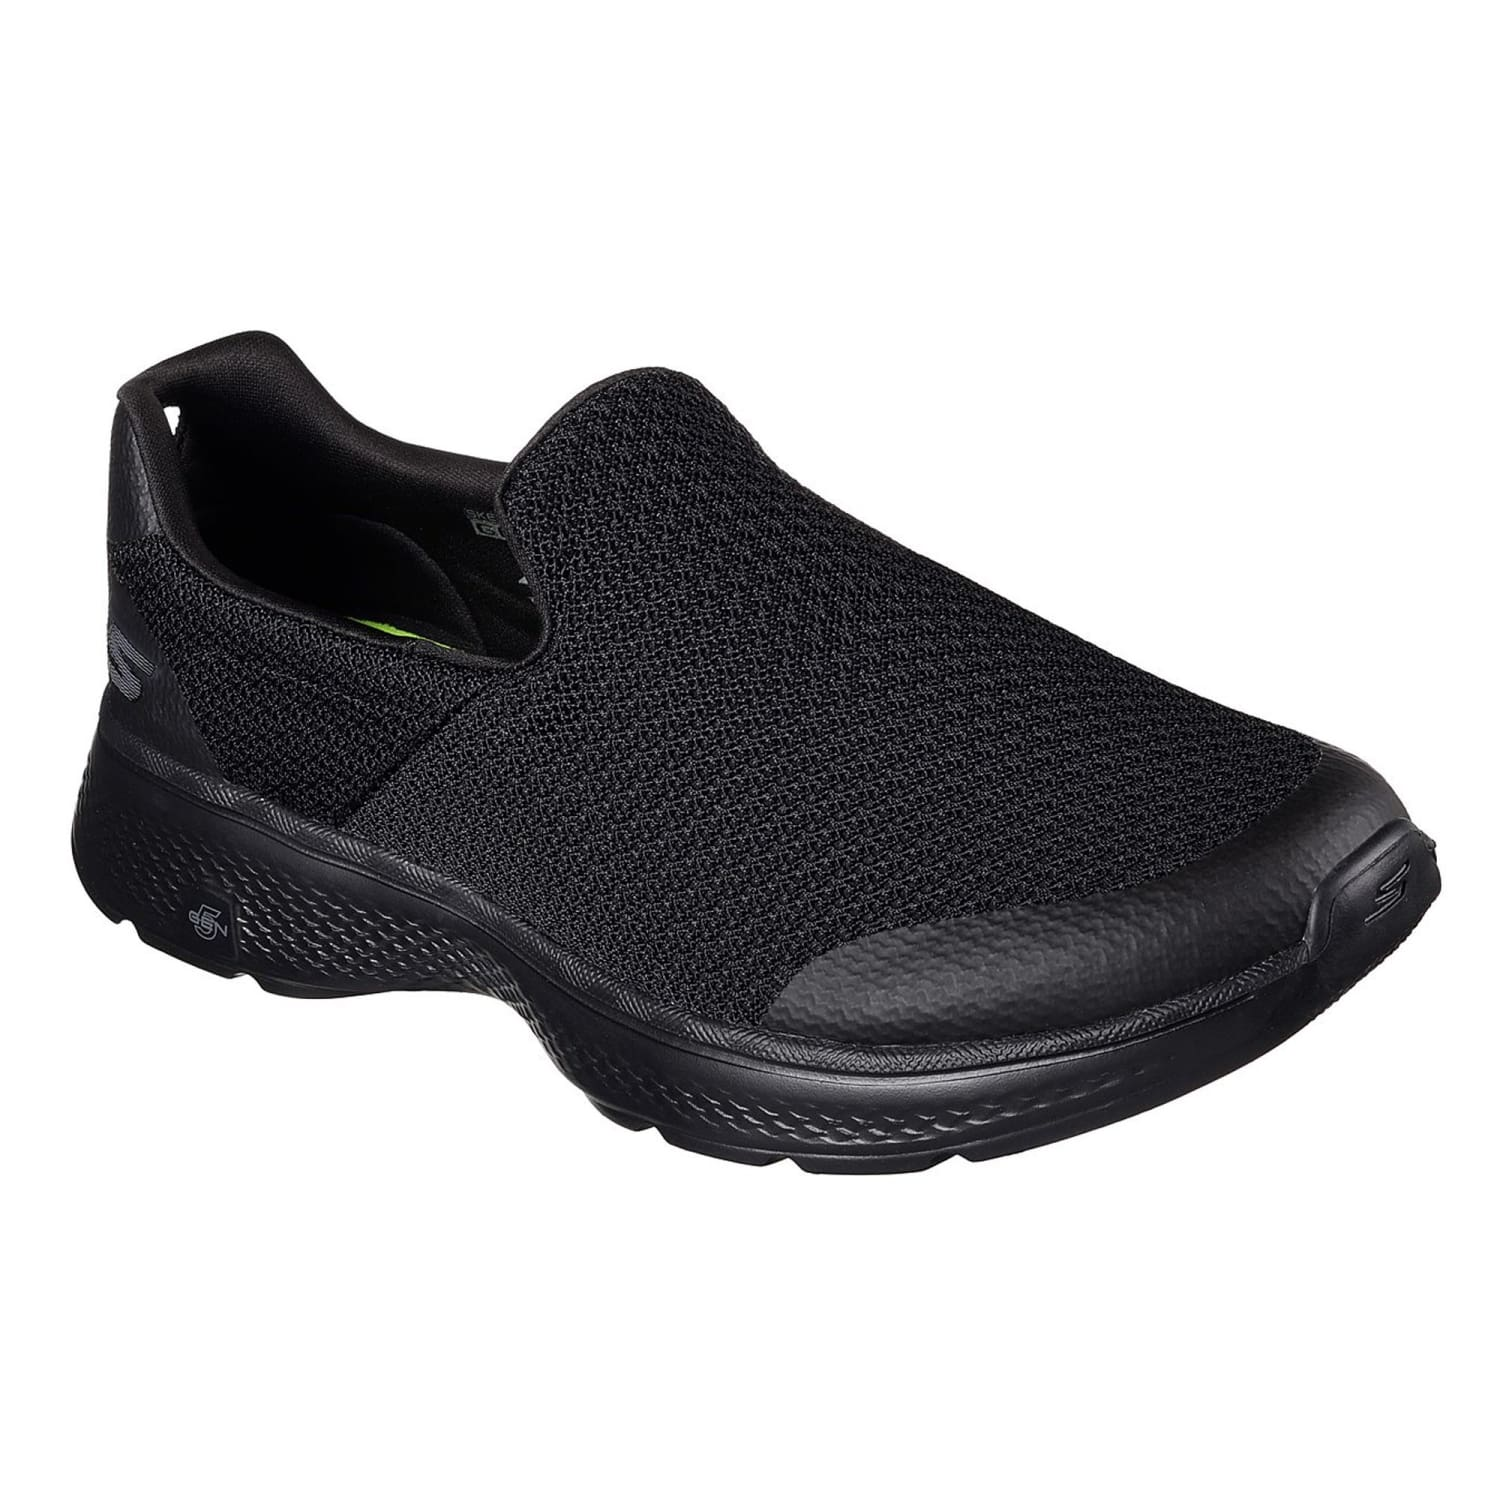 Skechers Trainers - 54155 - Expert - Black 1